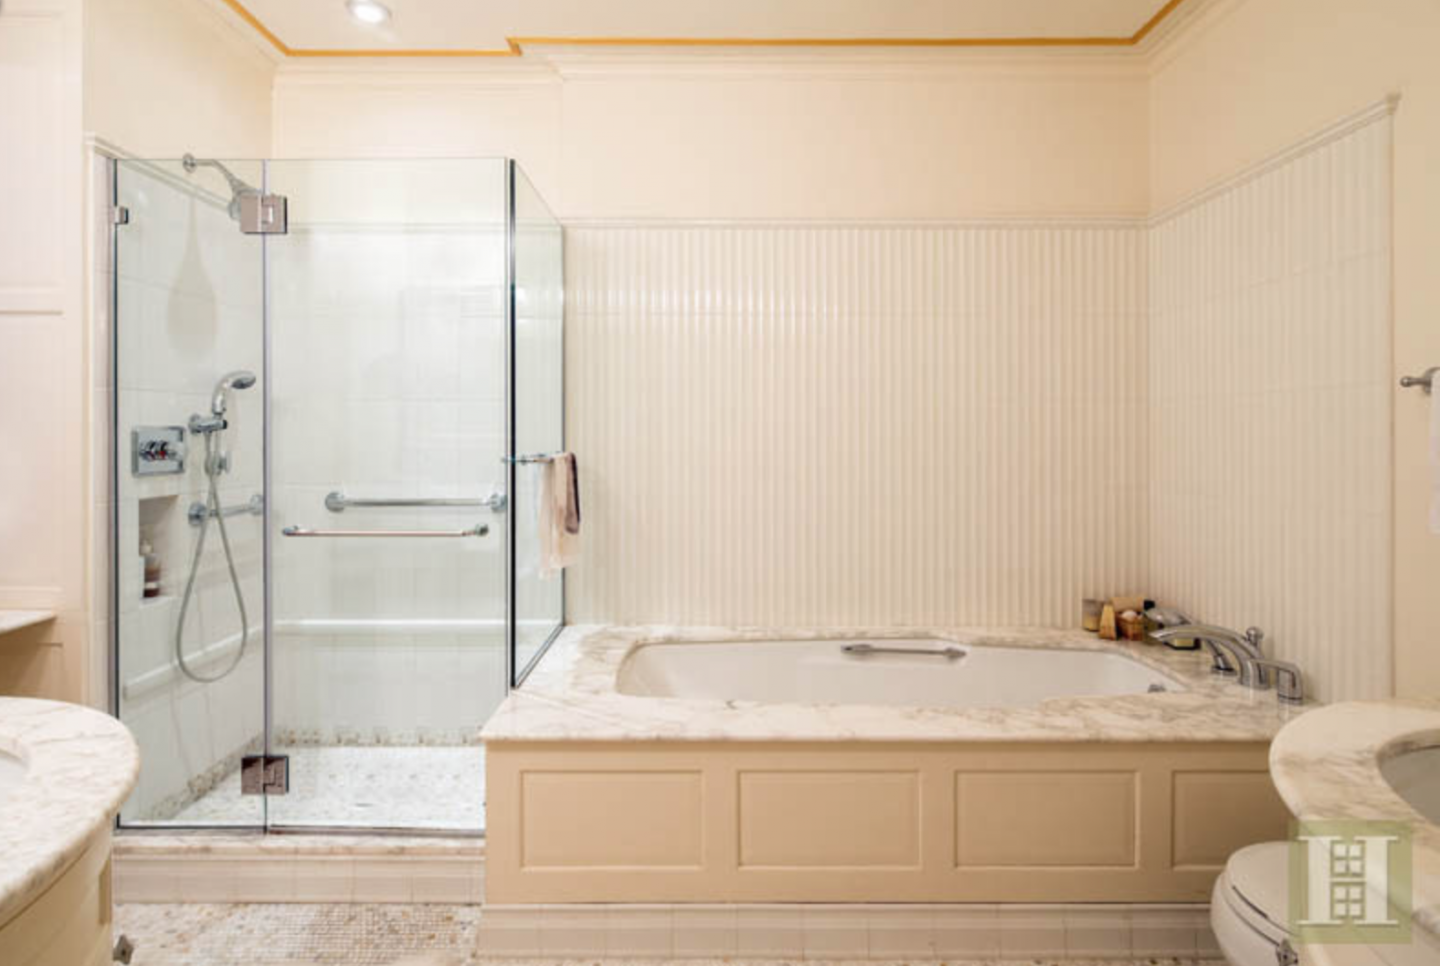 The condo has 3.5 bathrooms, this one with a rain shower and soaking tub.